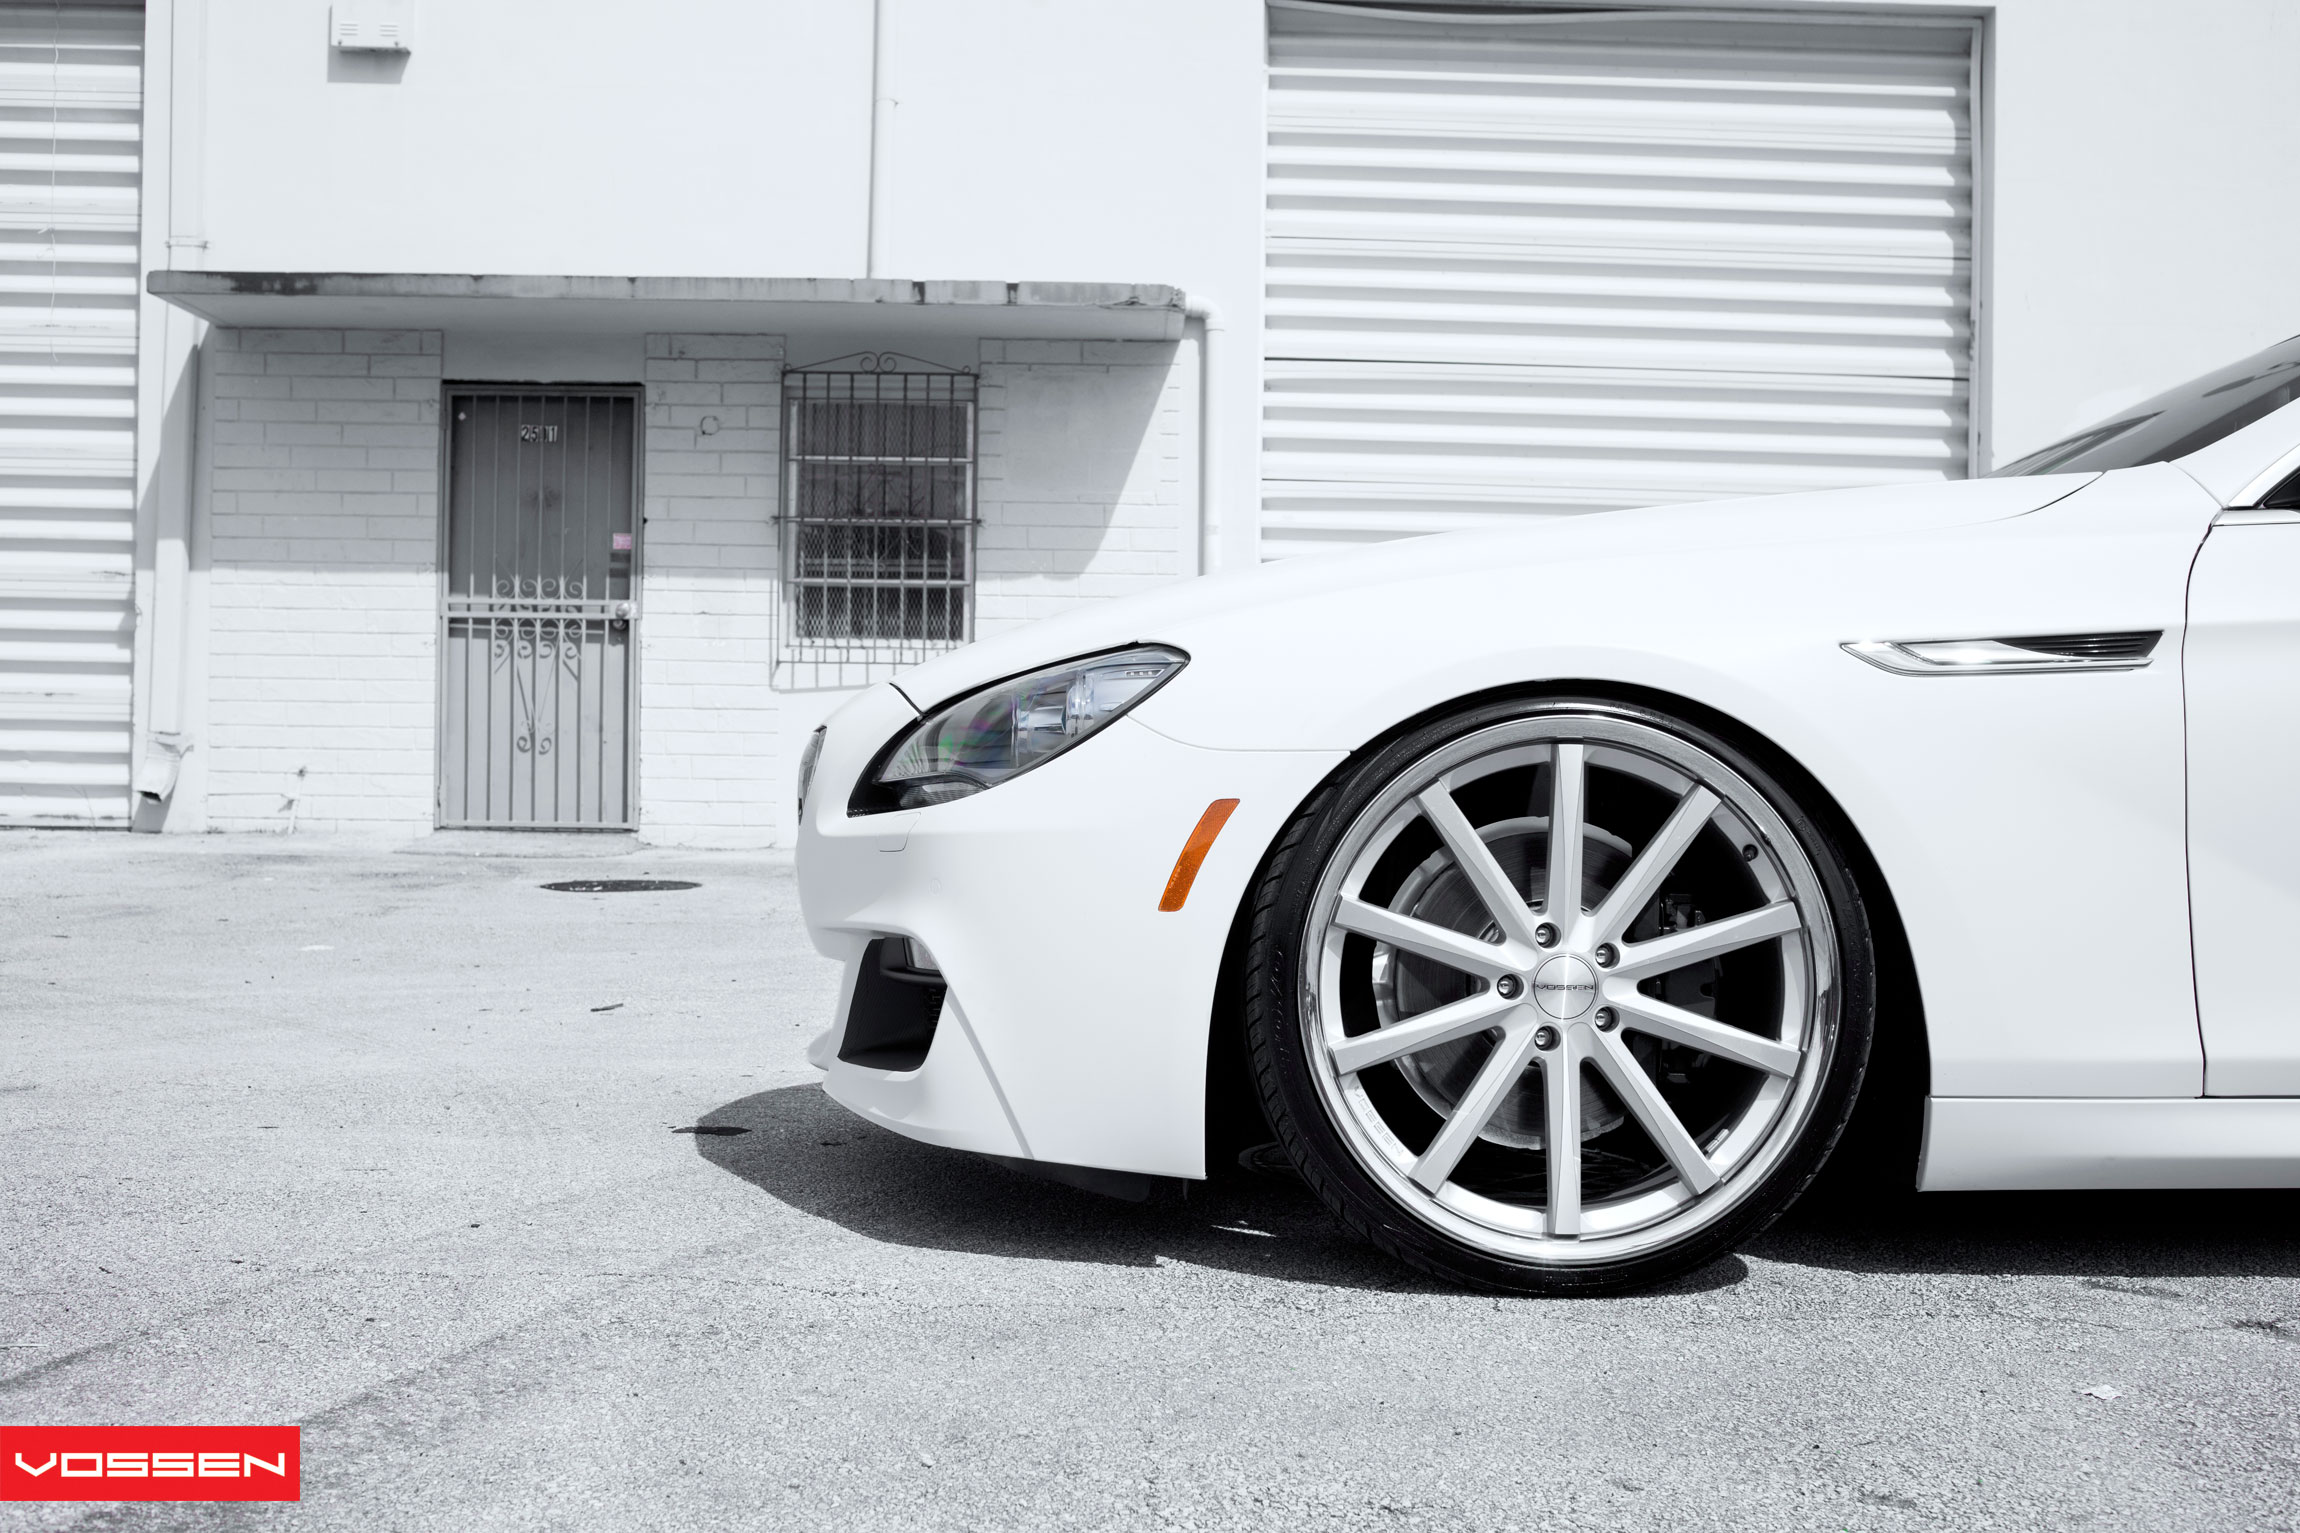 The White Warrior Sr Auto Bmw 650i Vossen Vvs Cv1